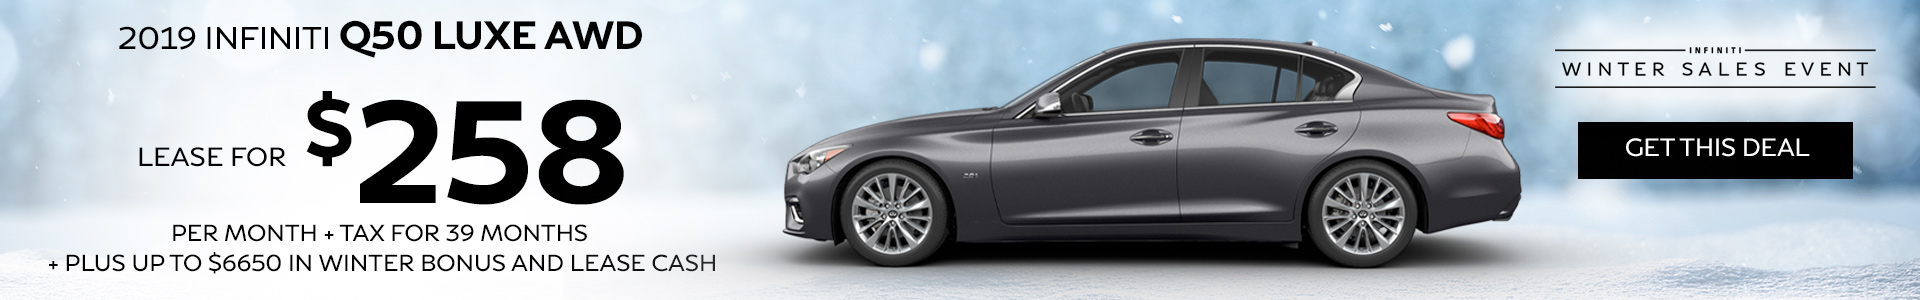 Q50 LUXE - Lease for $258